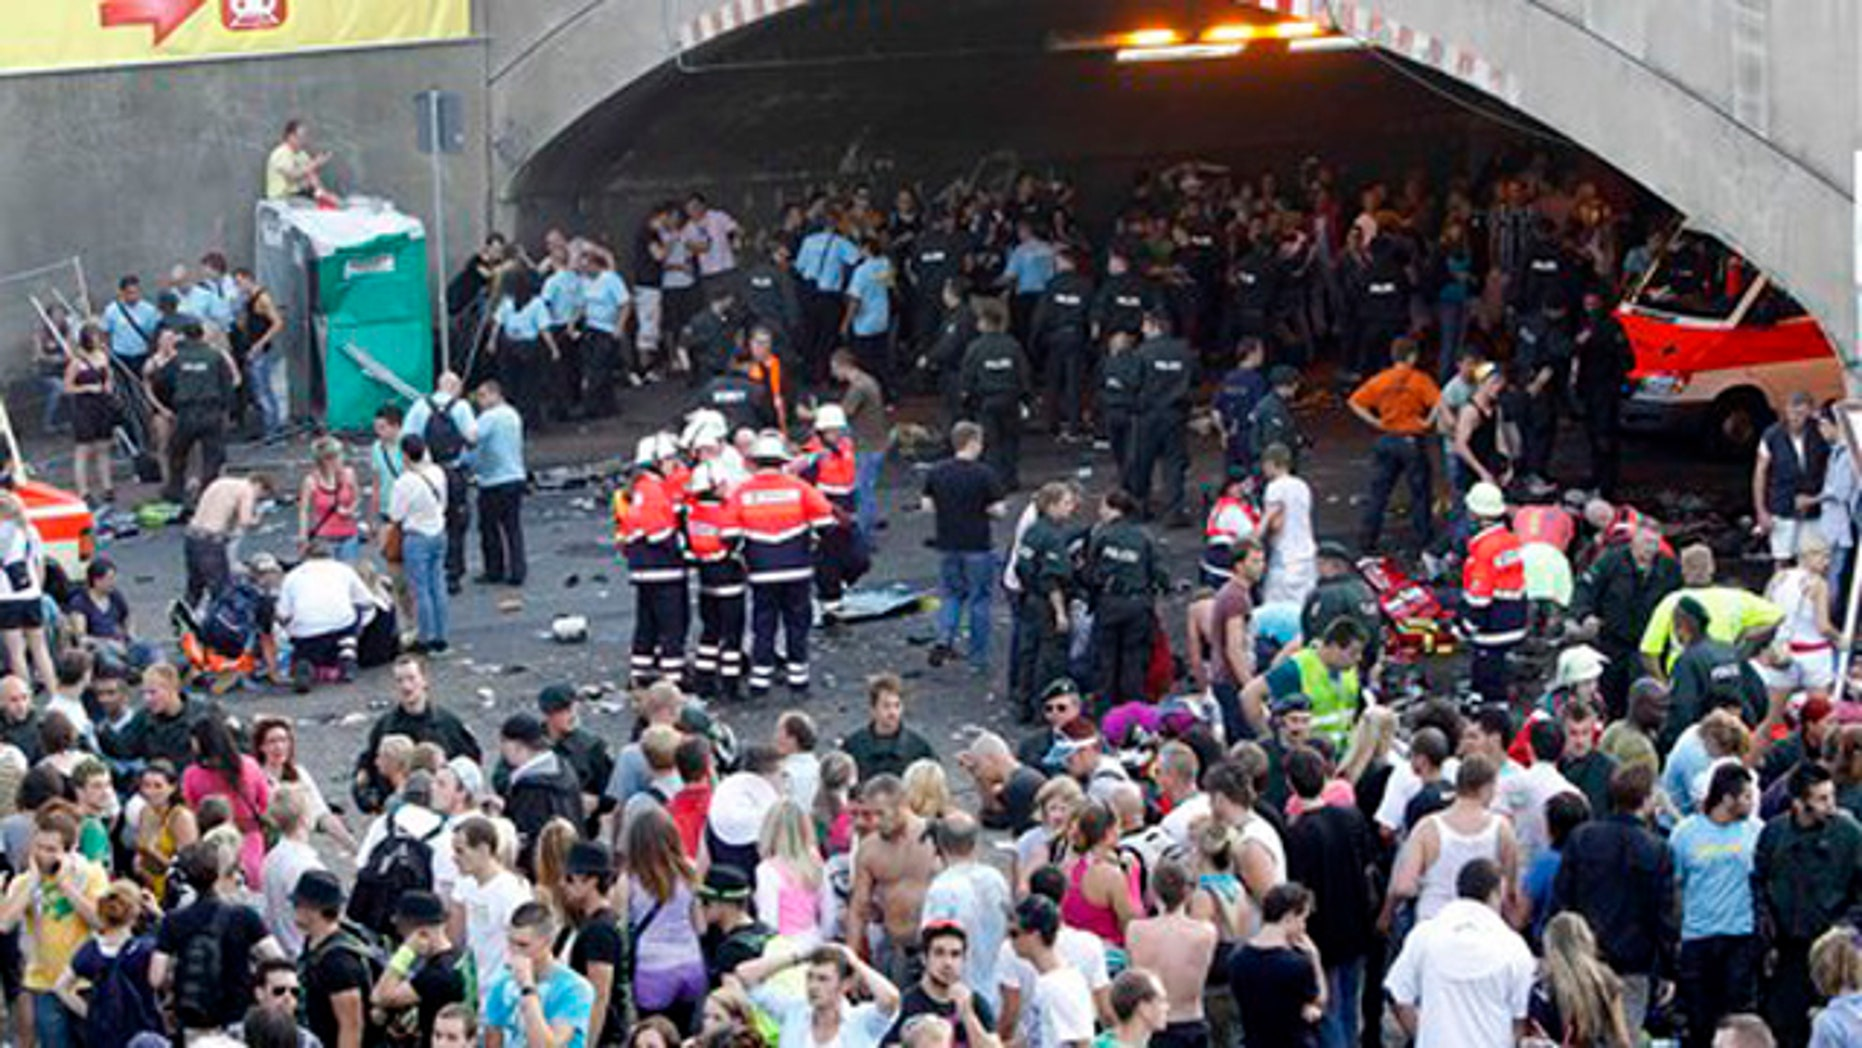 """Collapsed people get first aid after a panic on this year's techno-music festival """"Loveparade 2010"""" in Duisburg, Germany, on Saturday, July 24, 2010. German police say that 10 people were killed and 15 others injured when mass panic broke out in a tunnel at the Love Parade.  (AP Photo/dapd/Hermann J. Knippertz)"""